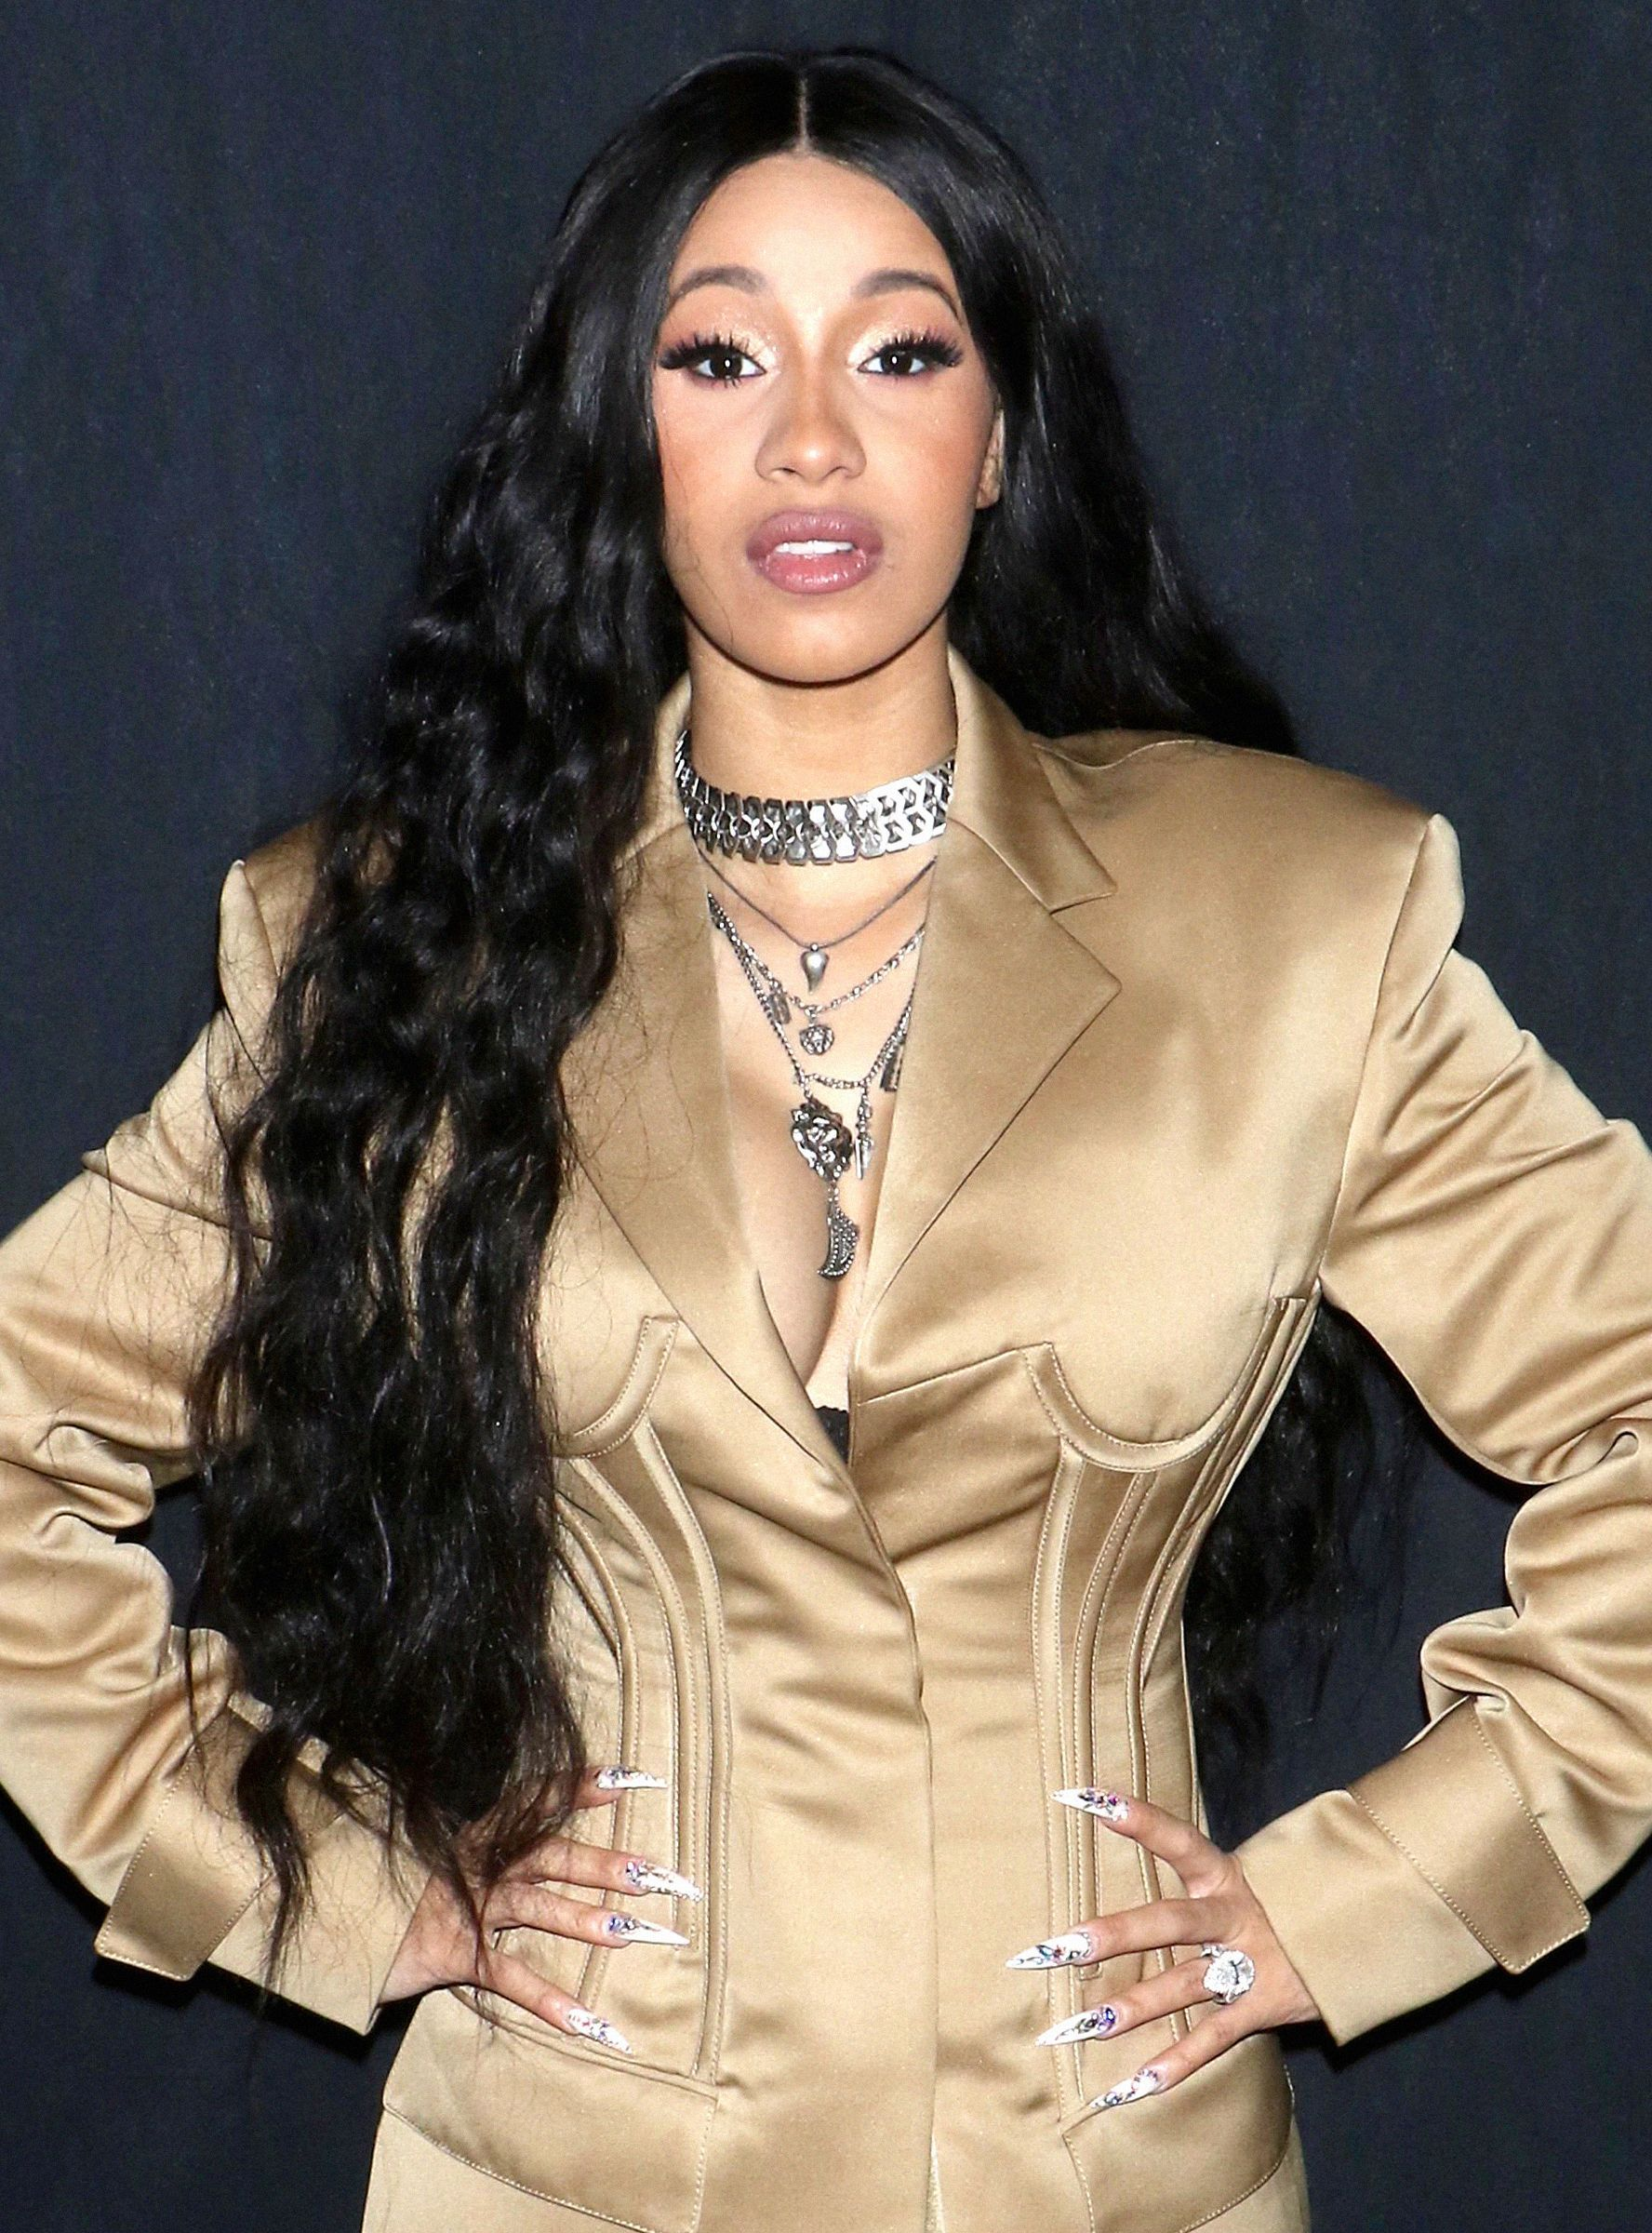 Cardi B Asks TMZ To Stop Reporting On Her Baby & Spreading Lies About New Music